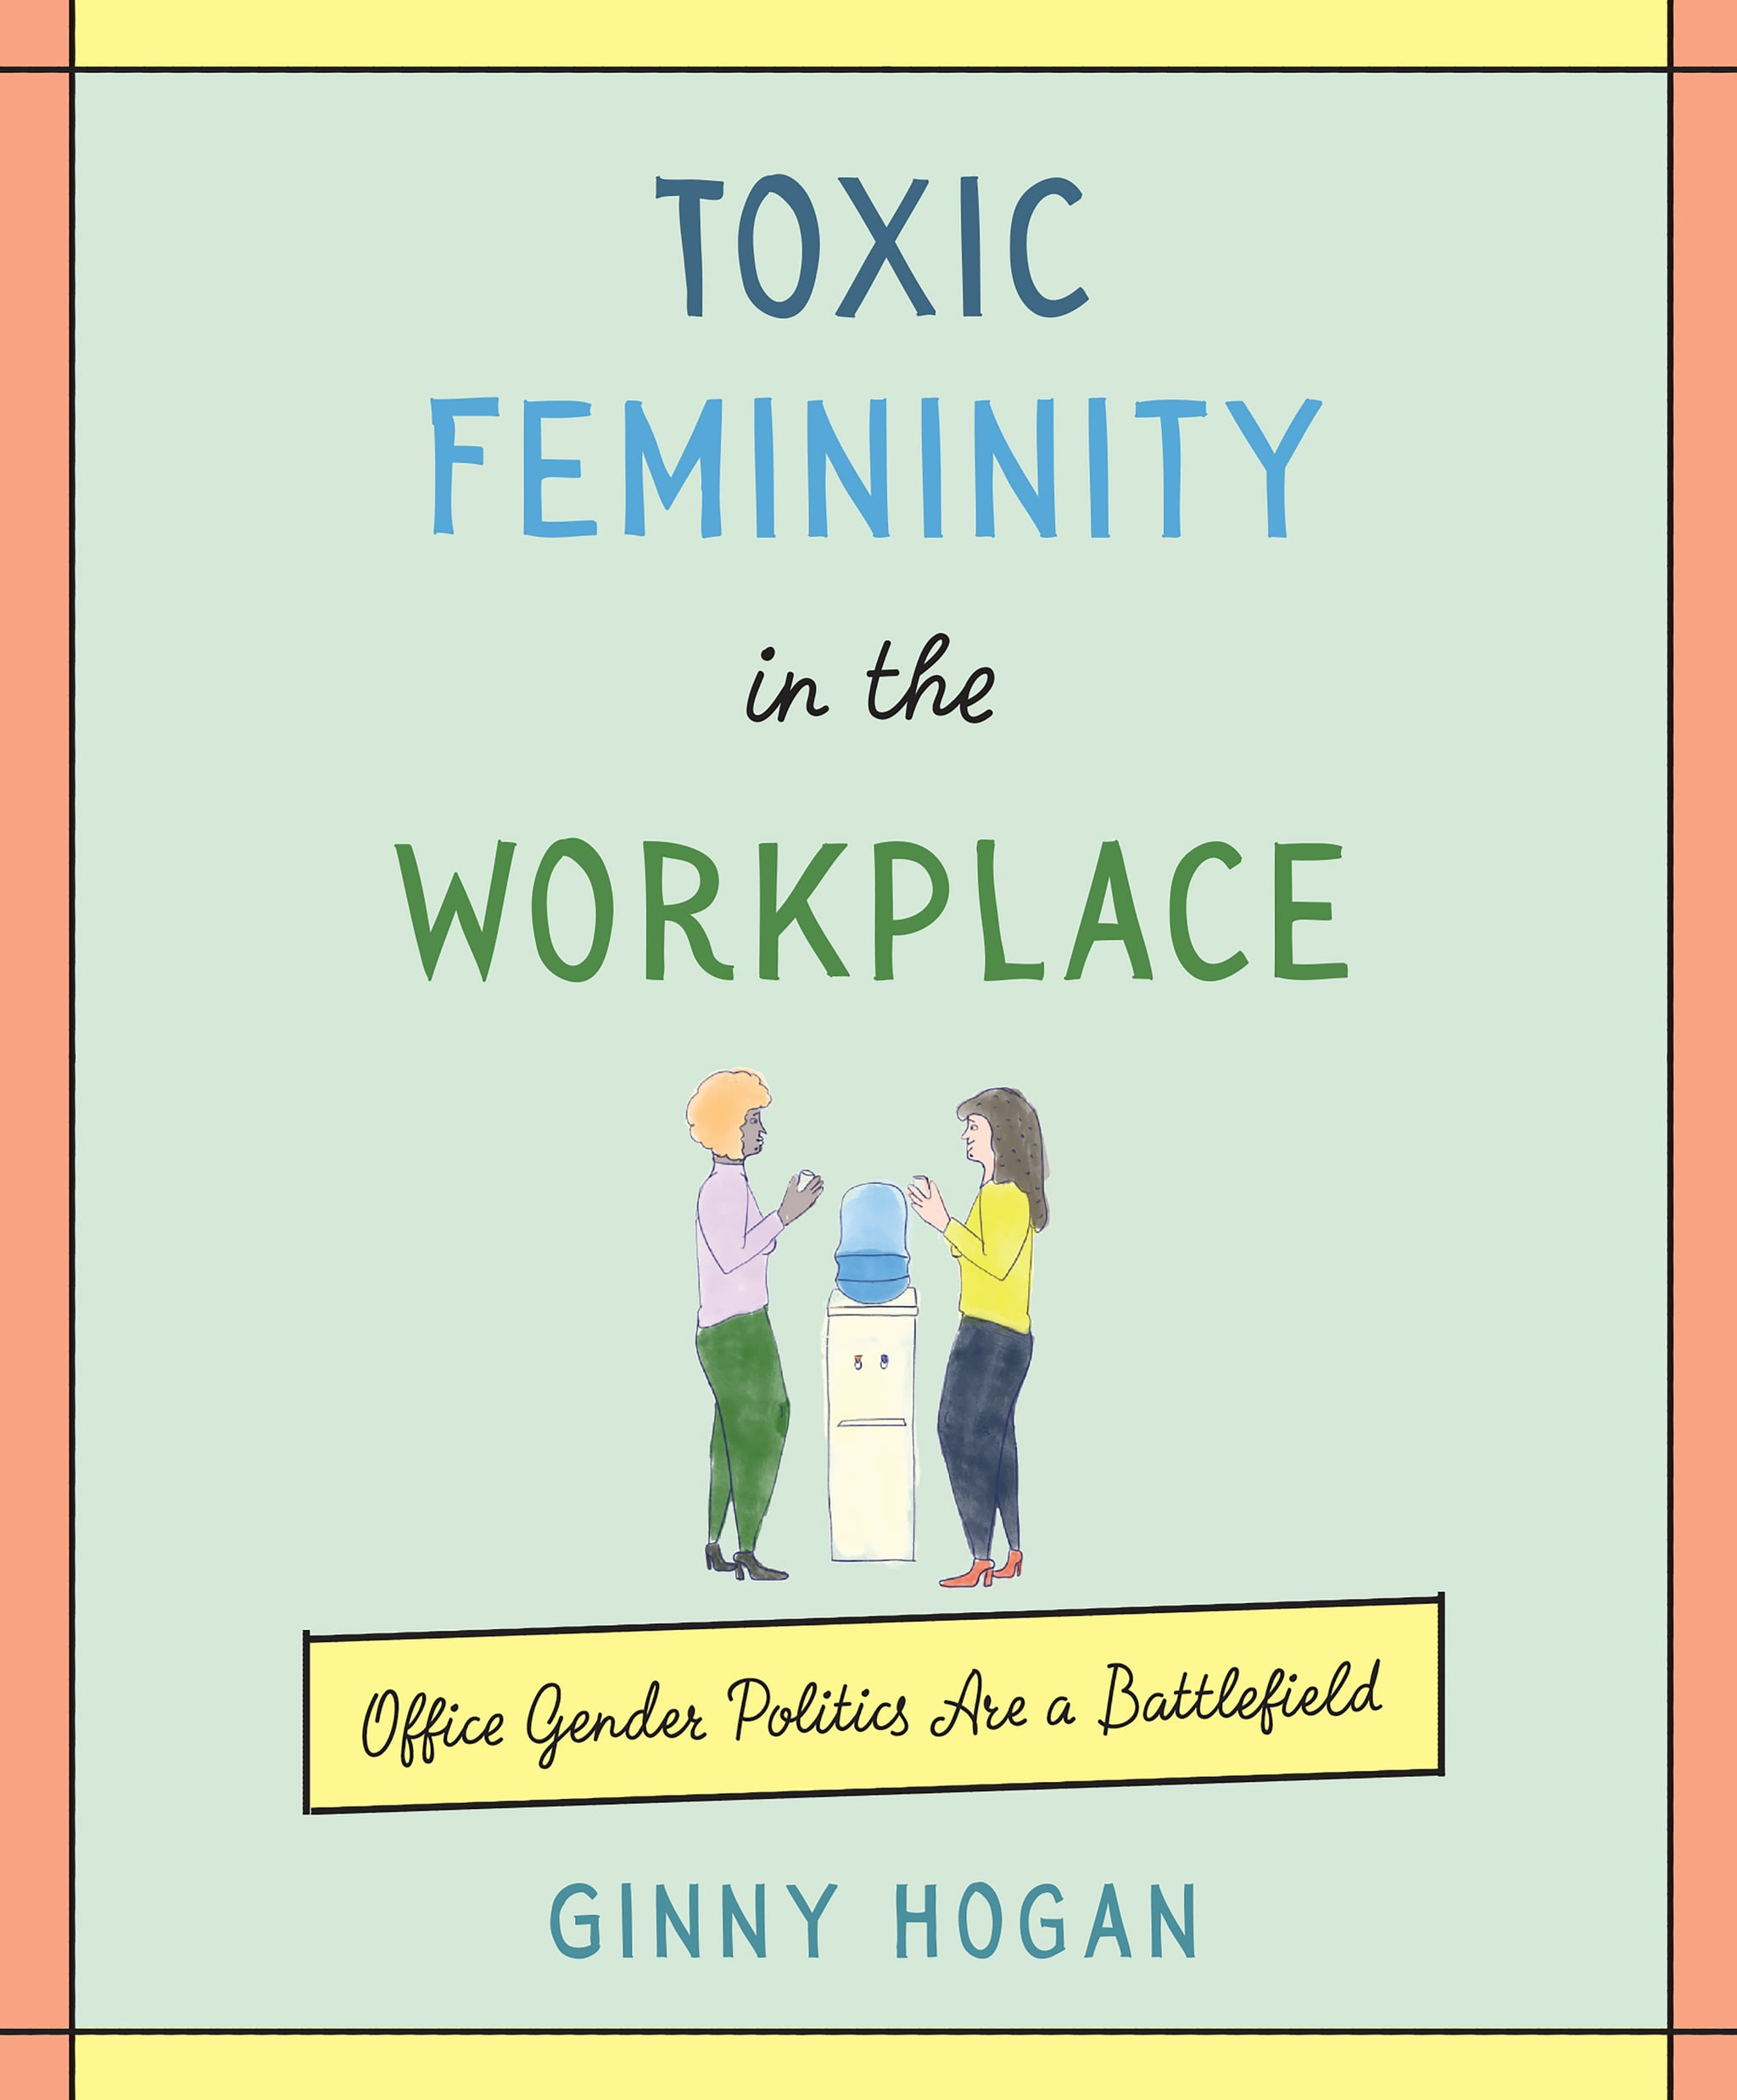 Ginny Hogan's Toxic Femininity in the Workplace Excerpt